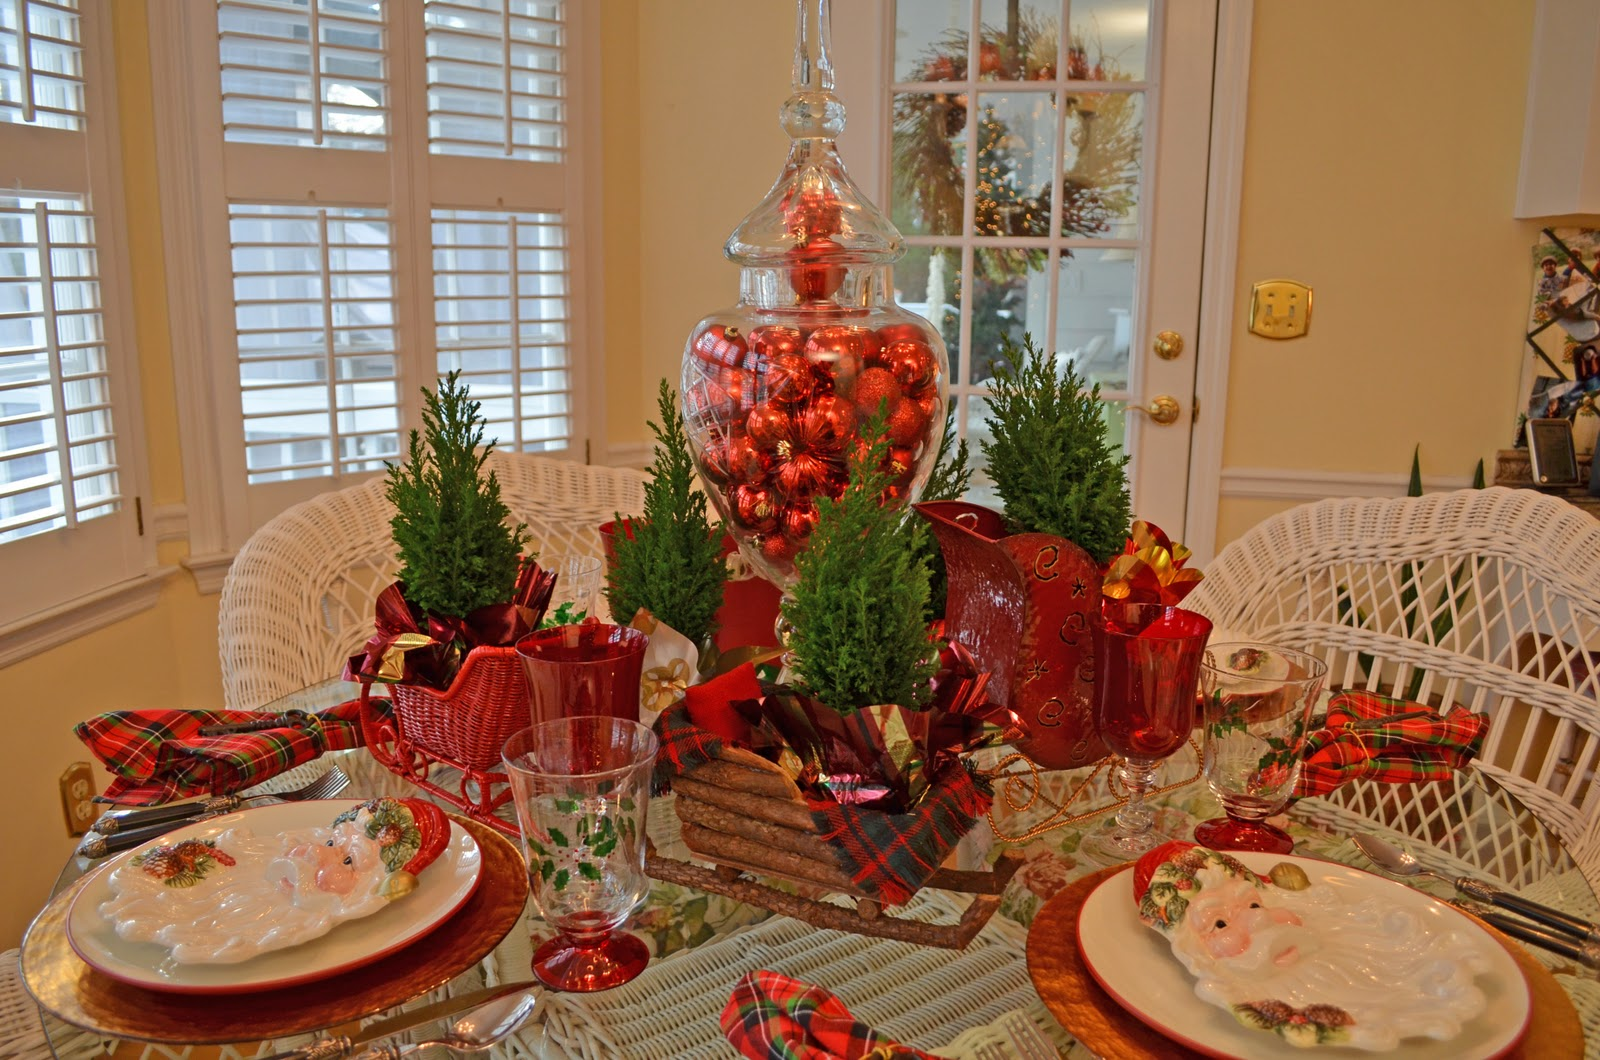 Xmas Centerpieces For Kitchen Table